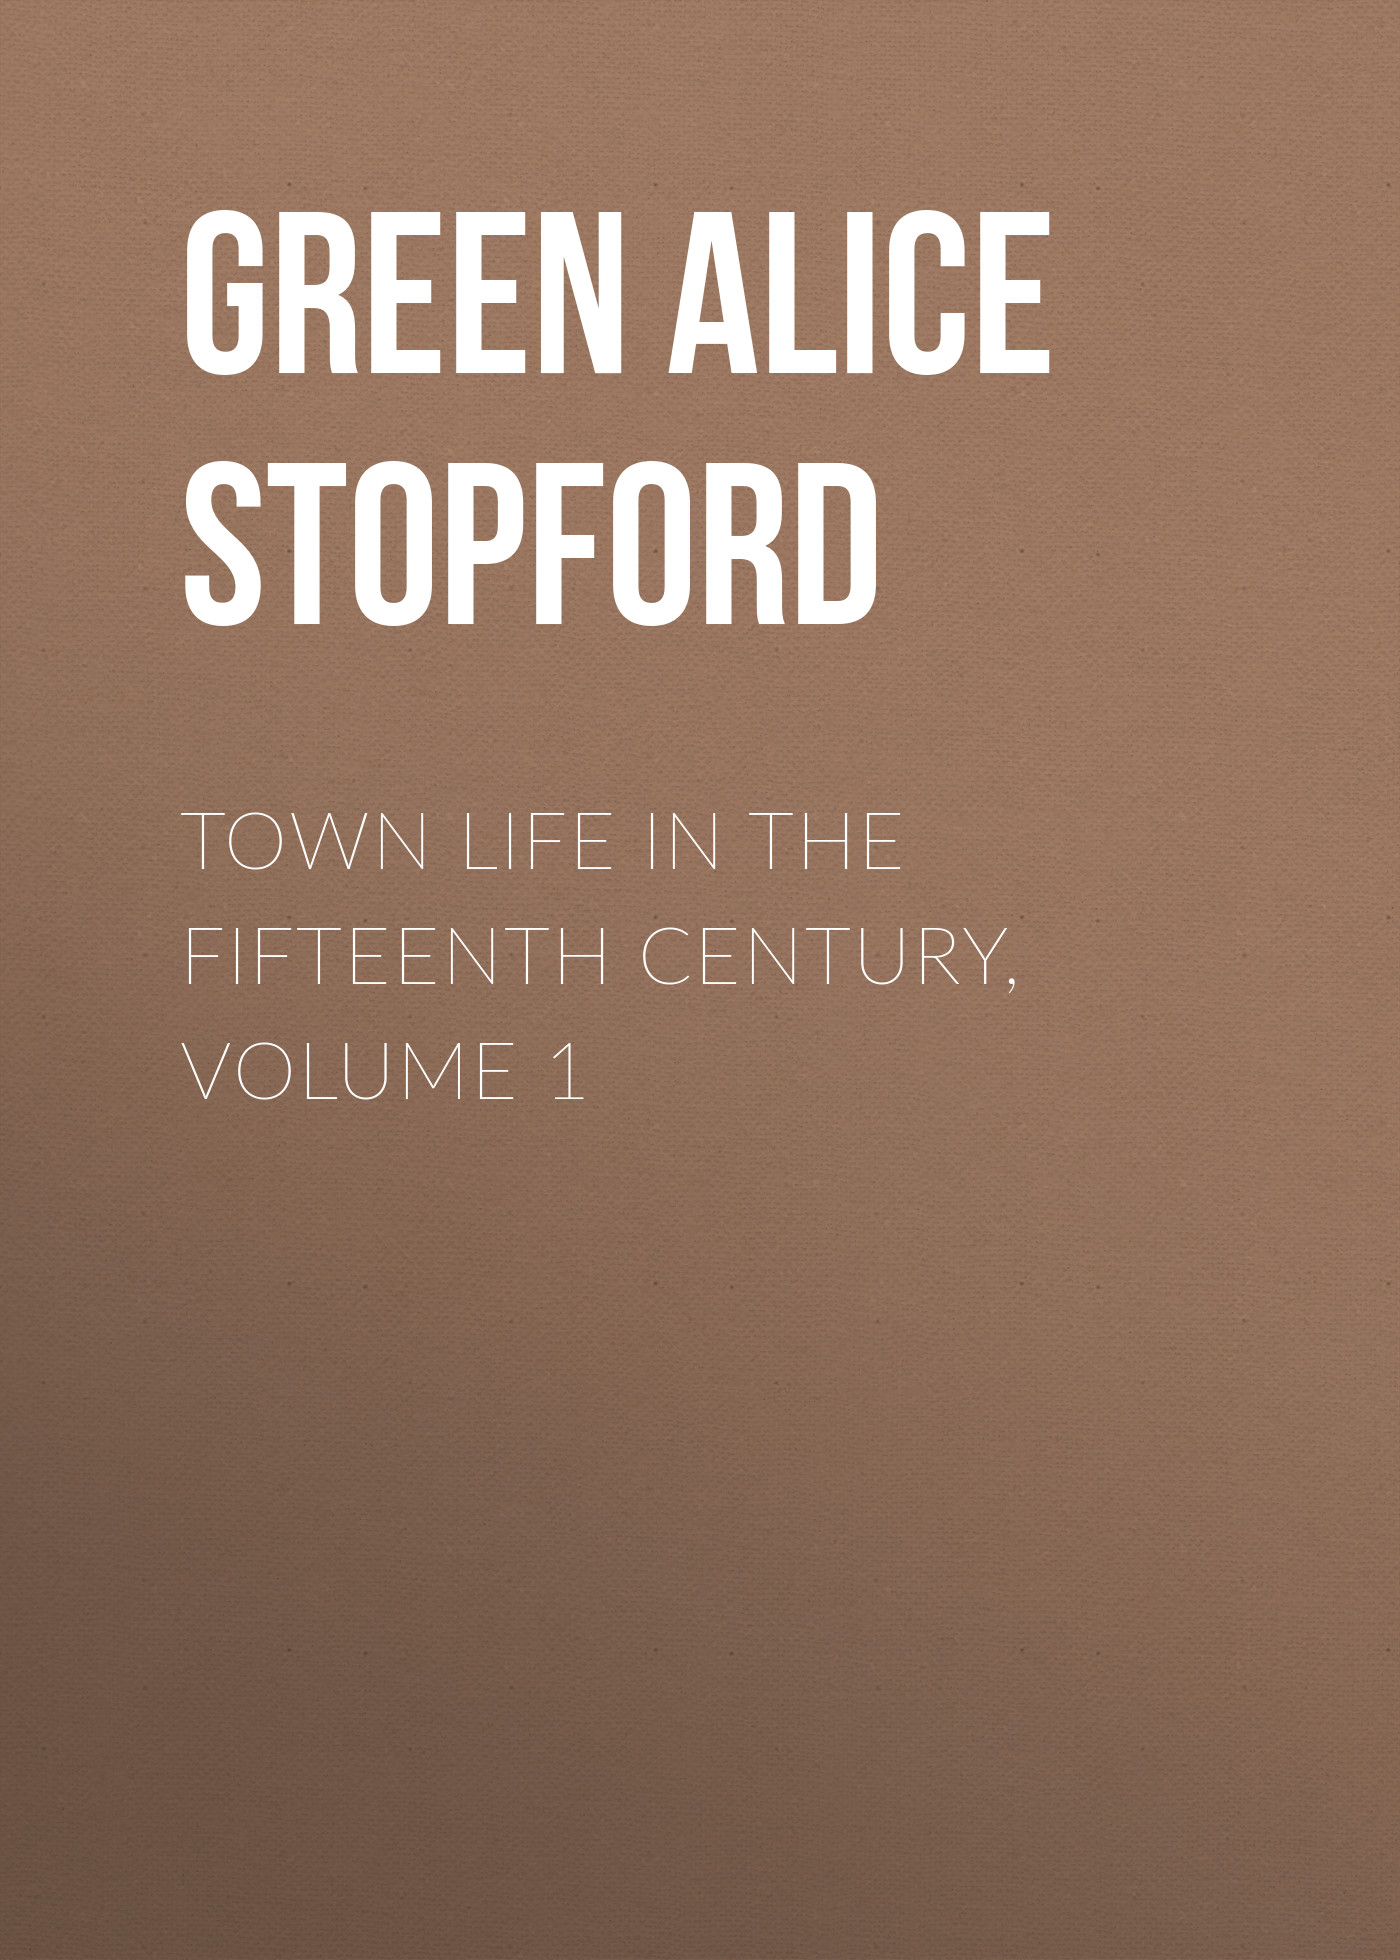 Green Alice Stopford Town Life in the Fifteenth Century, Volume 1